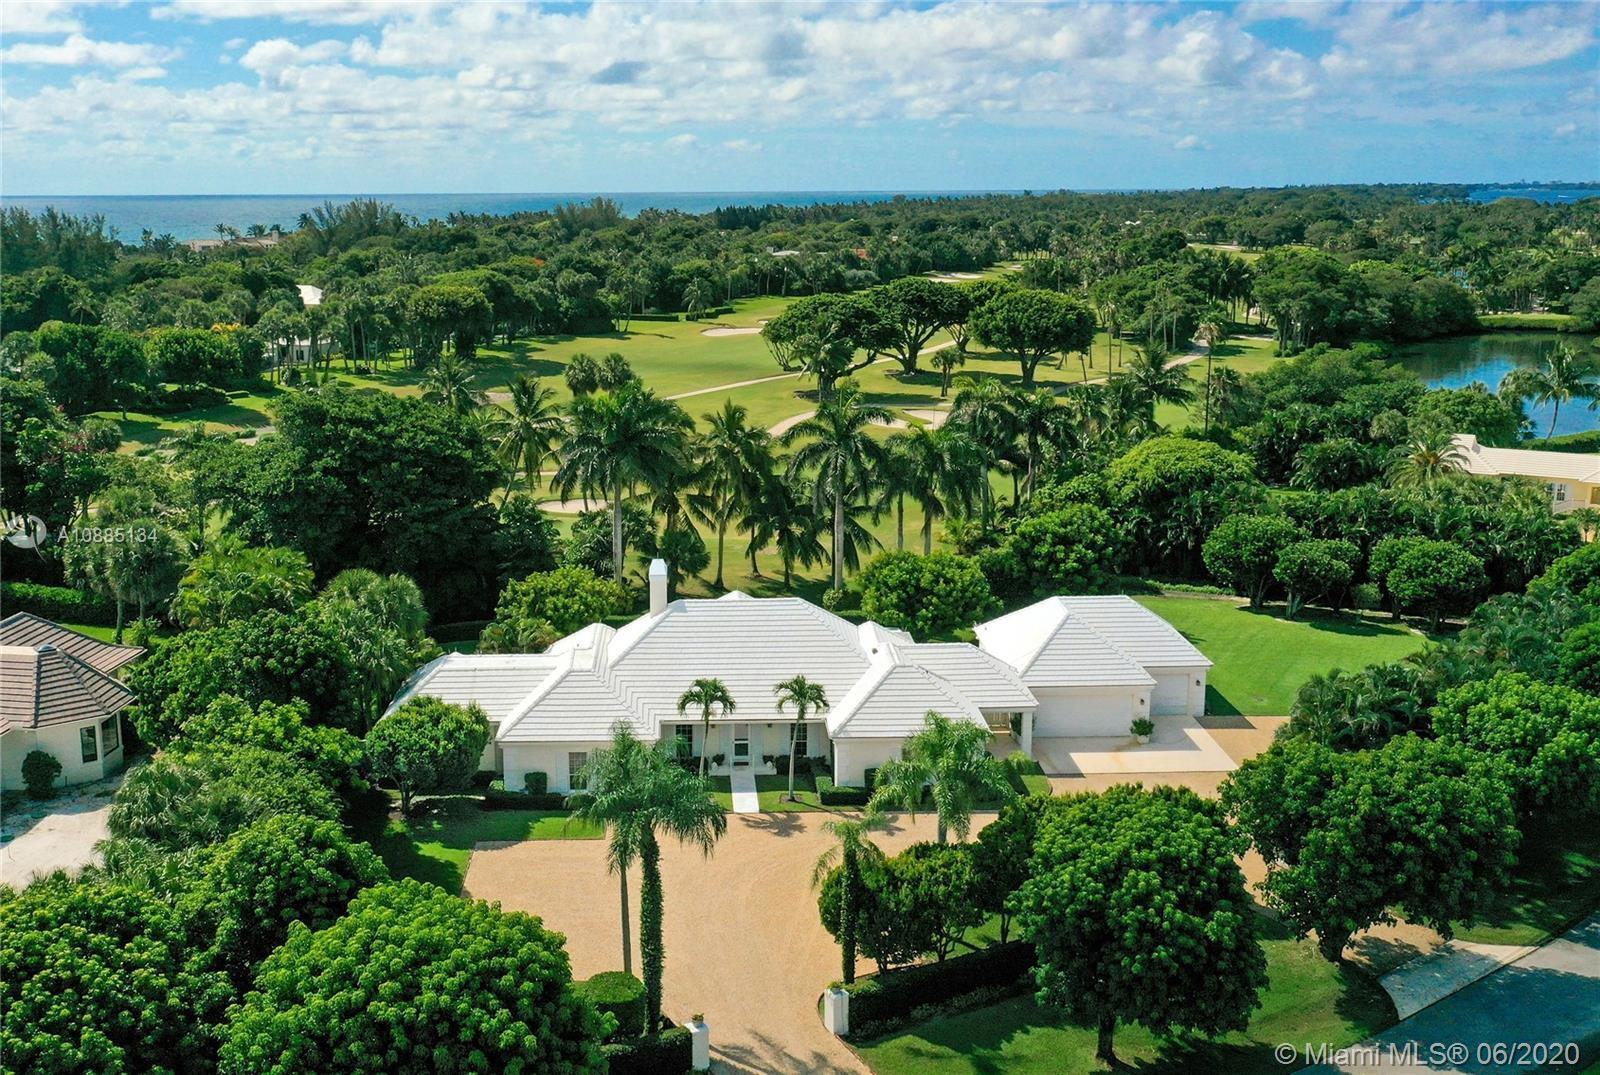 This stately Bermuda-style house is in near perfect condition and offers a beautiful environment for